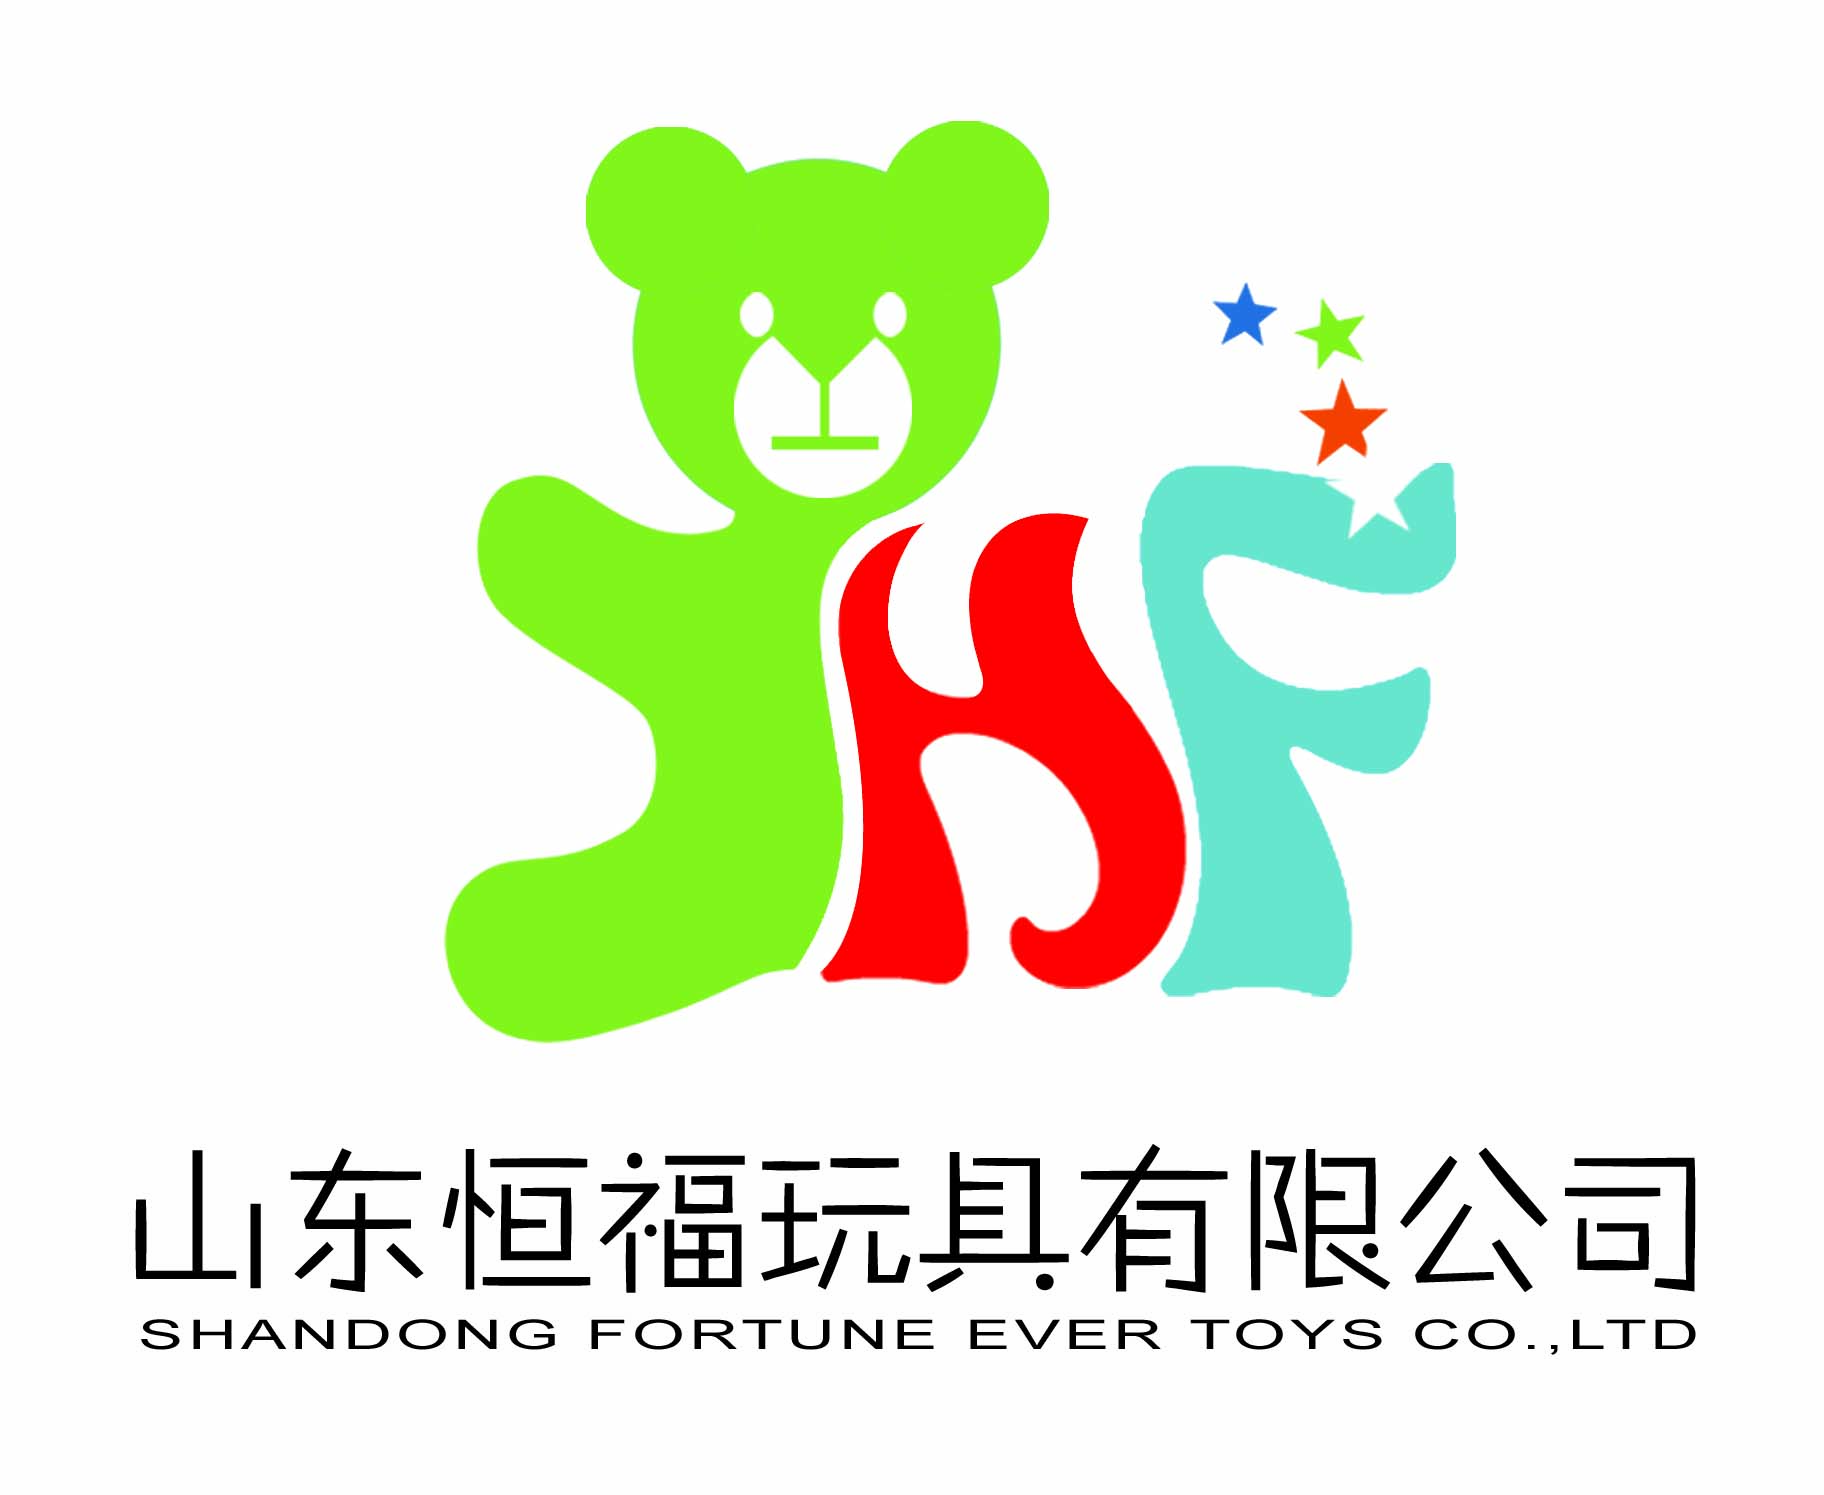 SHANDONG FORTUNE EVER TOYS CO.,LTD